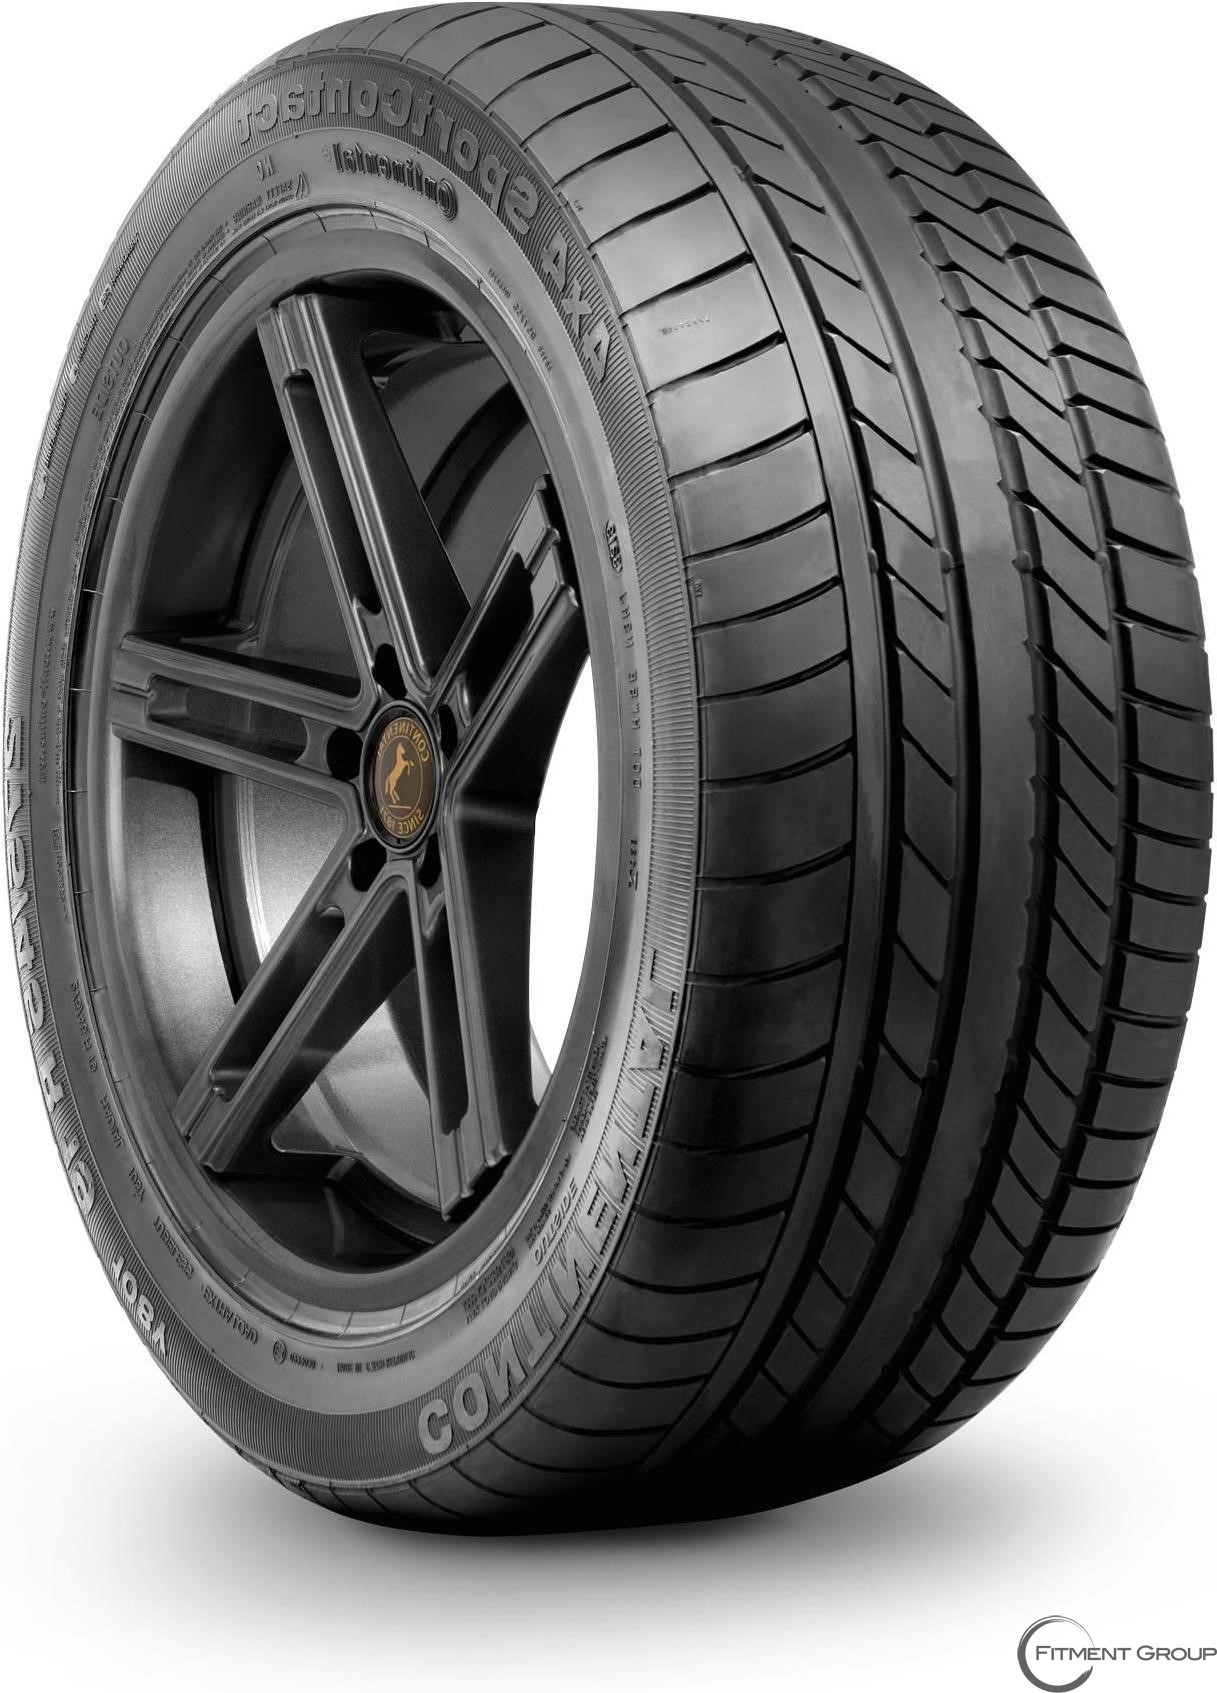 275/40R20 106Y 4X4SPORTCONTACT CNT